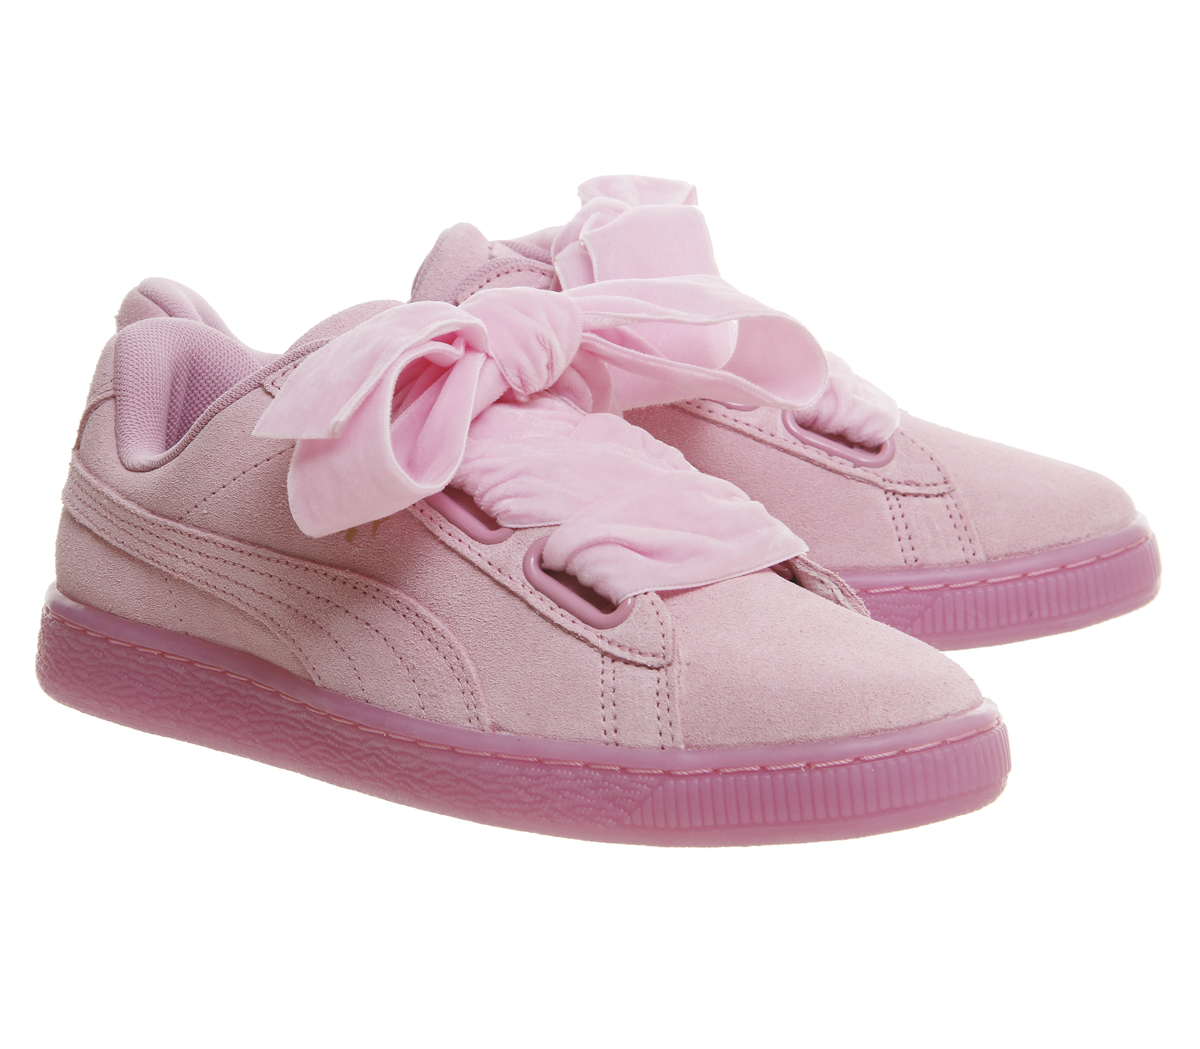 Womens Puma Suede Heart Trainers  ff0be7beb